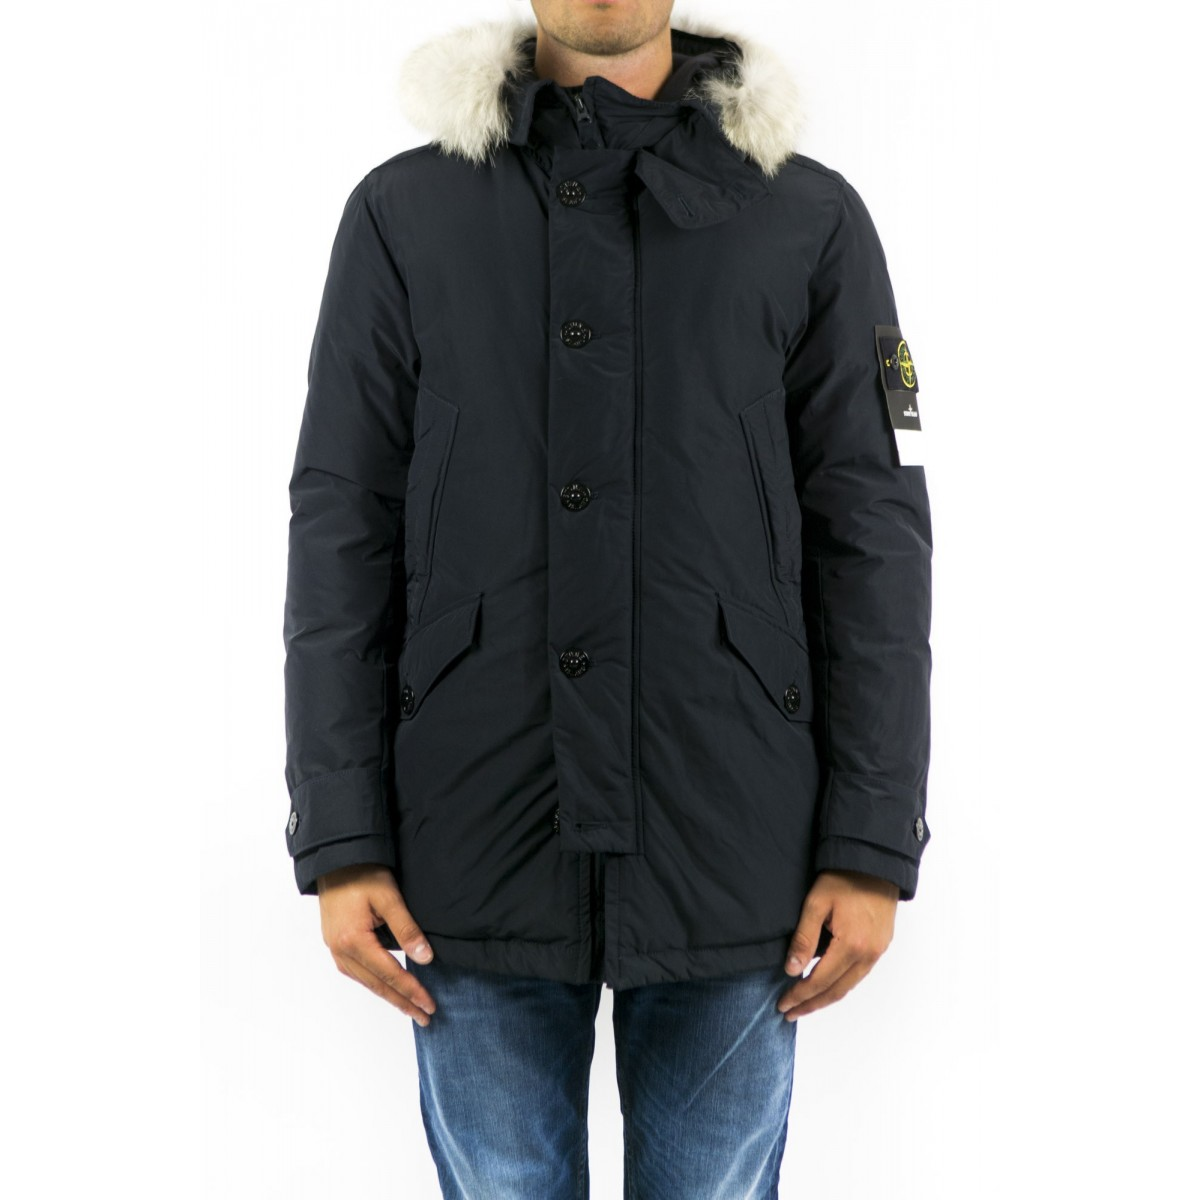 Down Jacket Stone Island - 40926 Parka Pelo In Micro-Reps